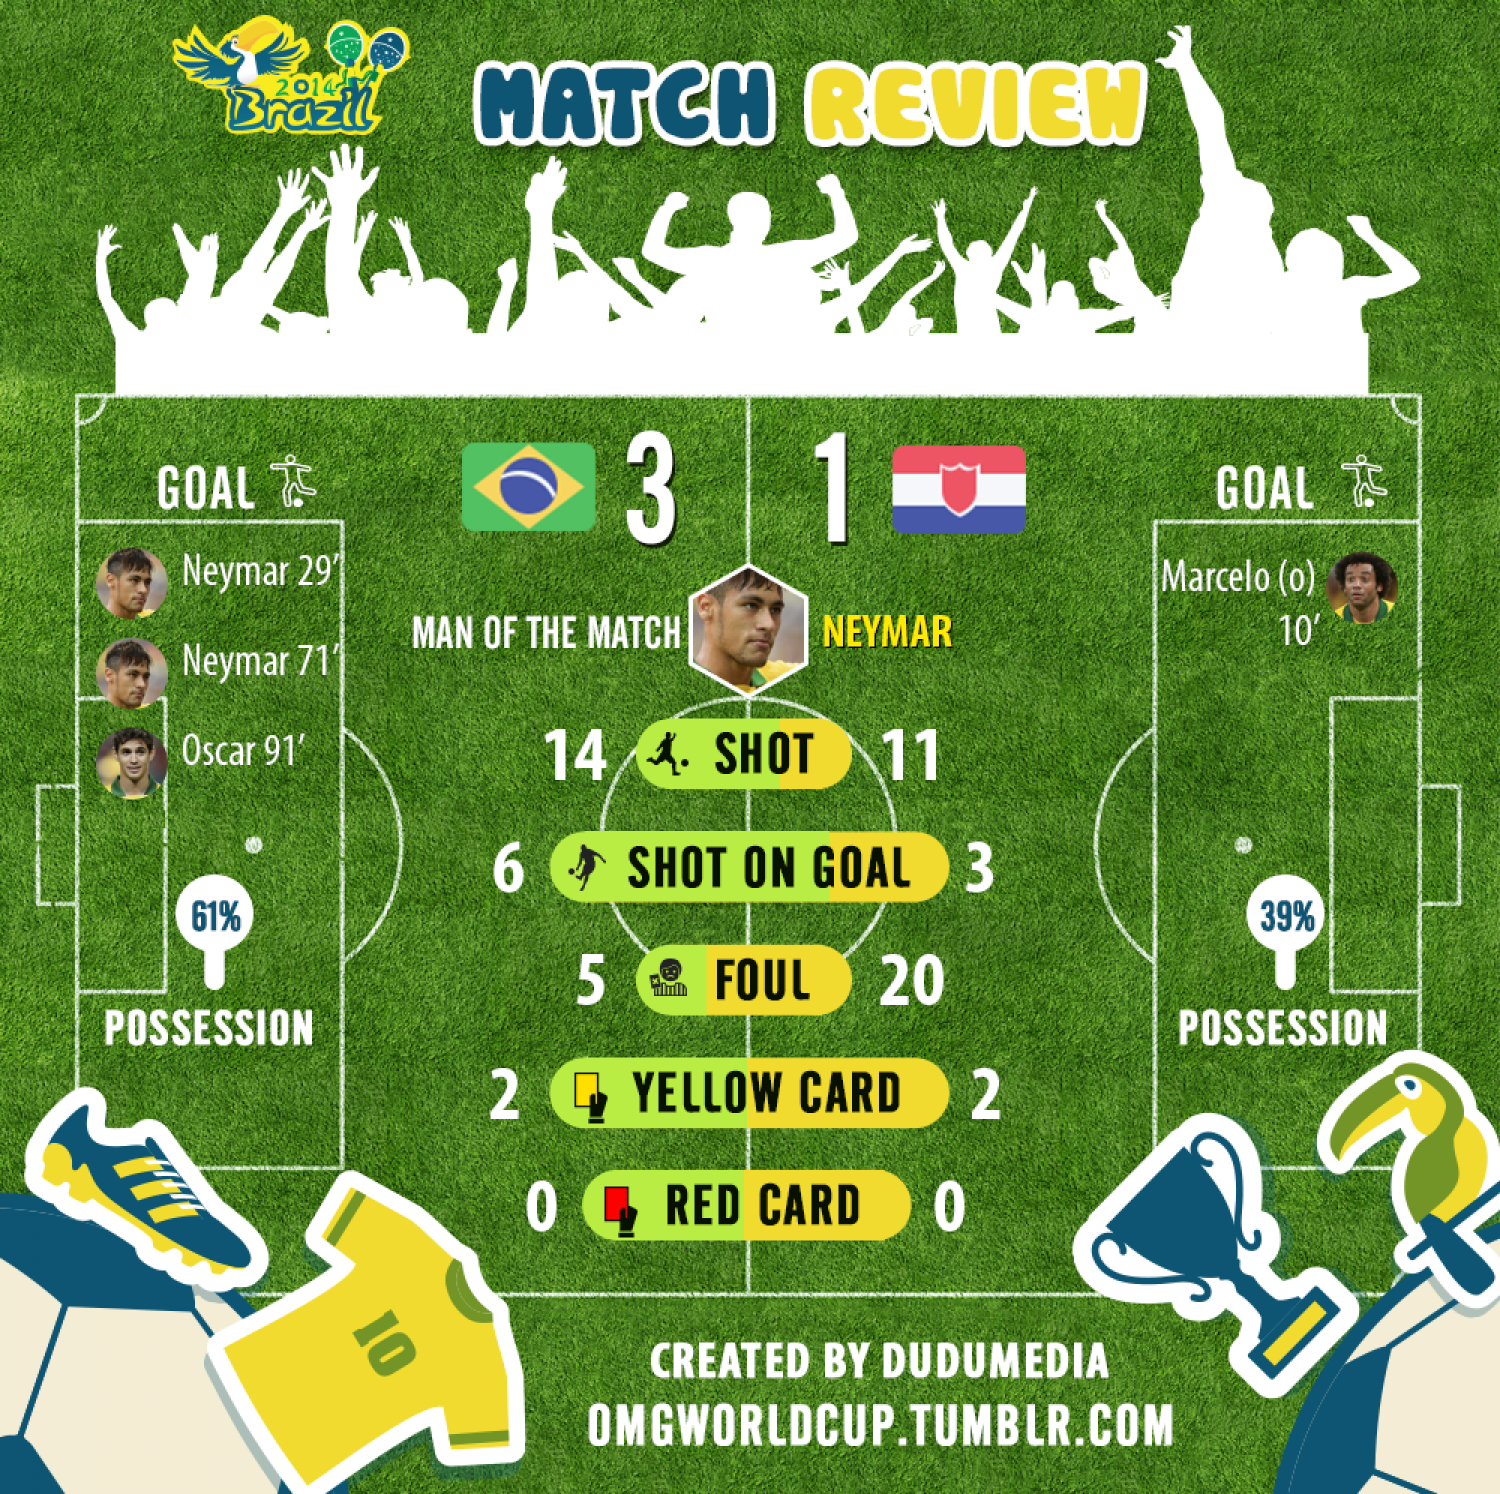 Match Review World Cup 2014: Brazil vs Croatia  Infographic